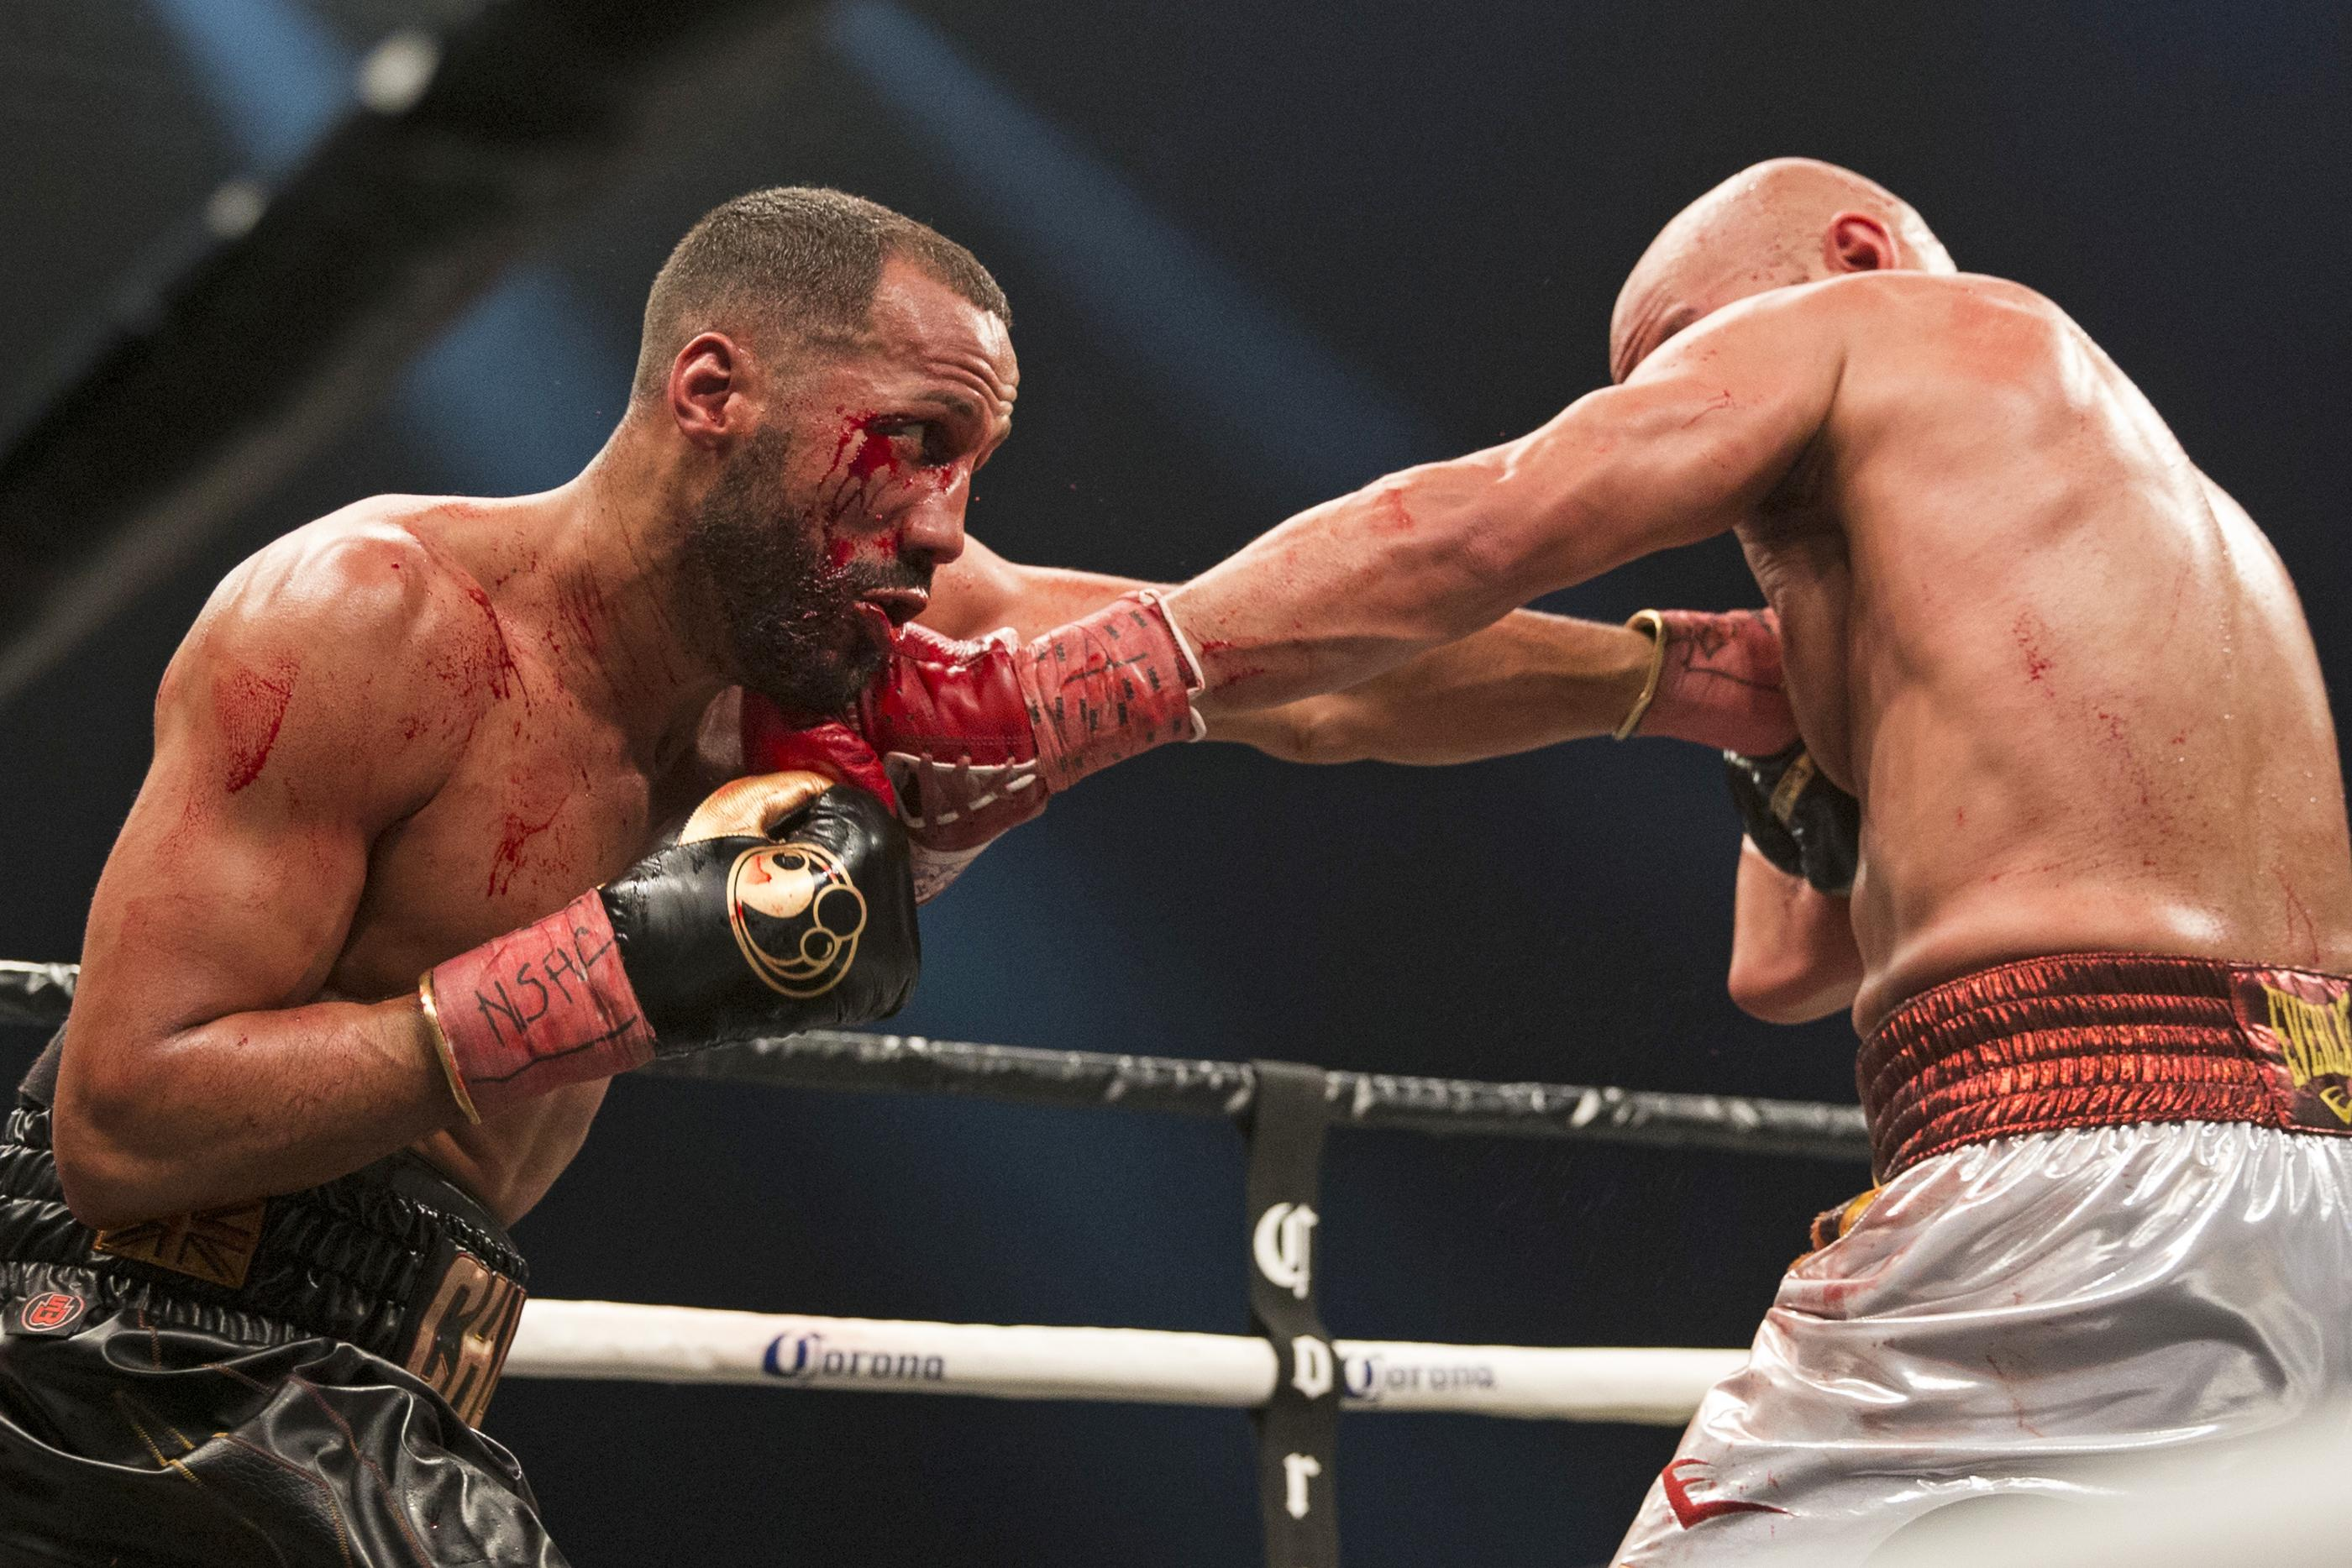 James DeGale reclaimed his IBF title after a shock loss to Caleb Truax